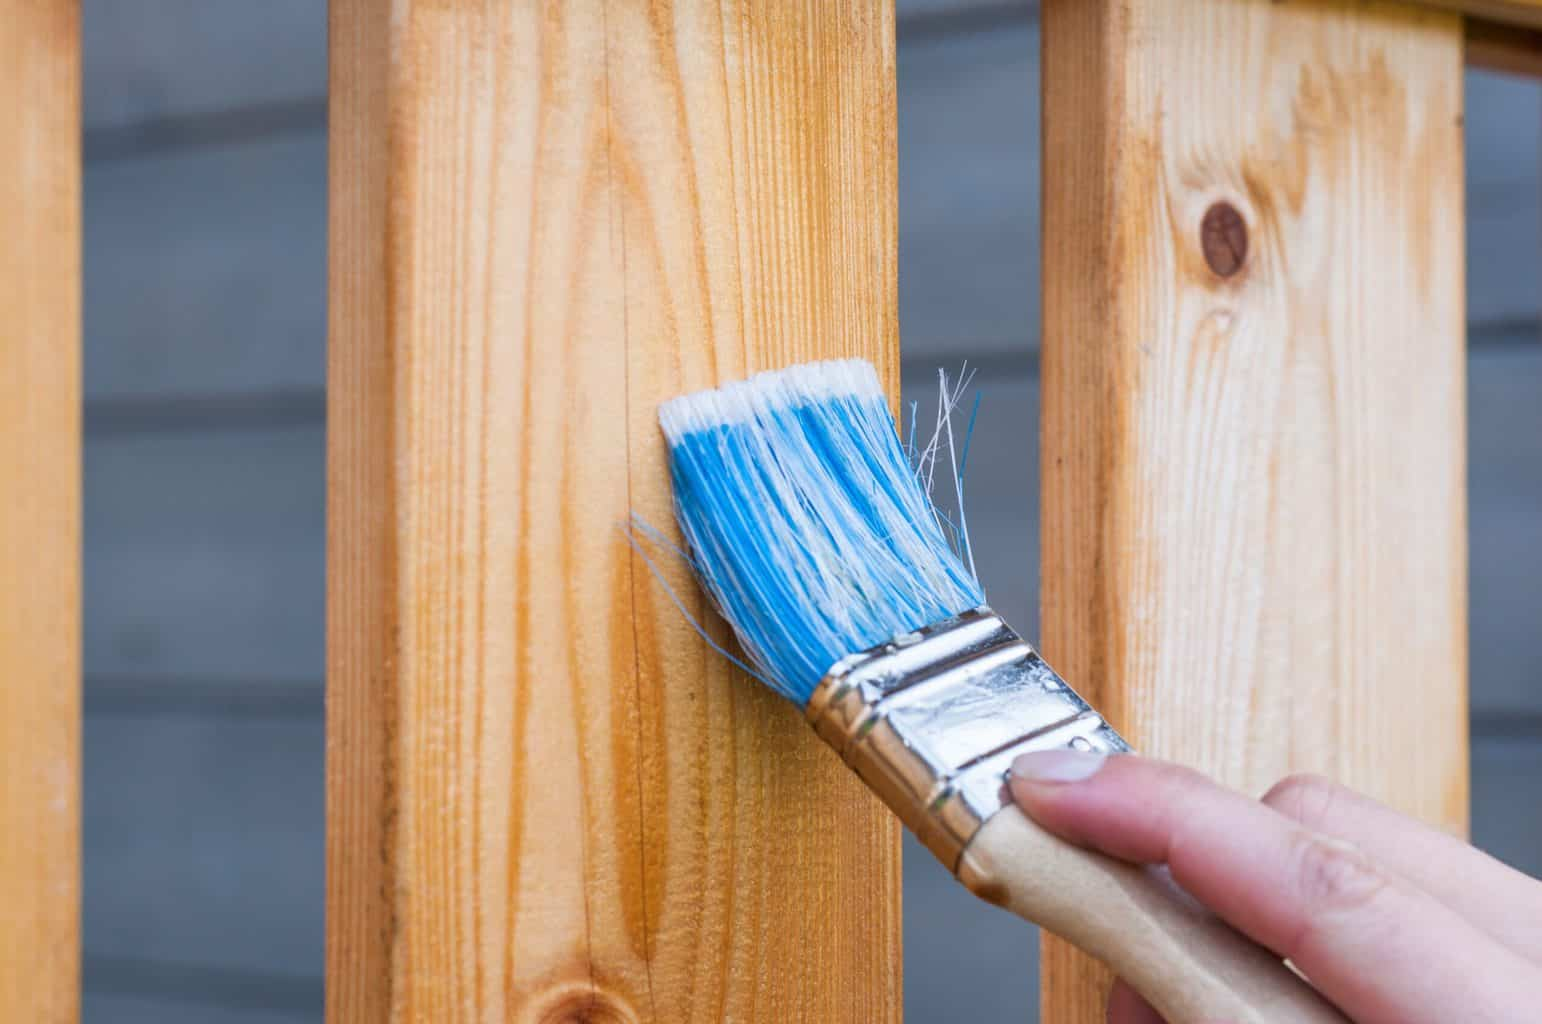 A blue paint brush shining the wood